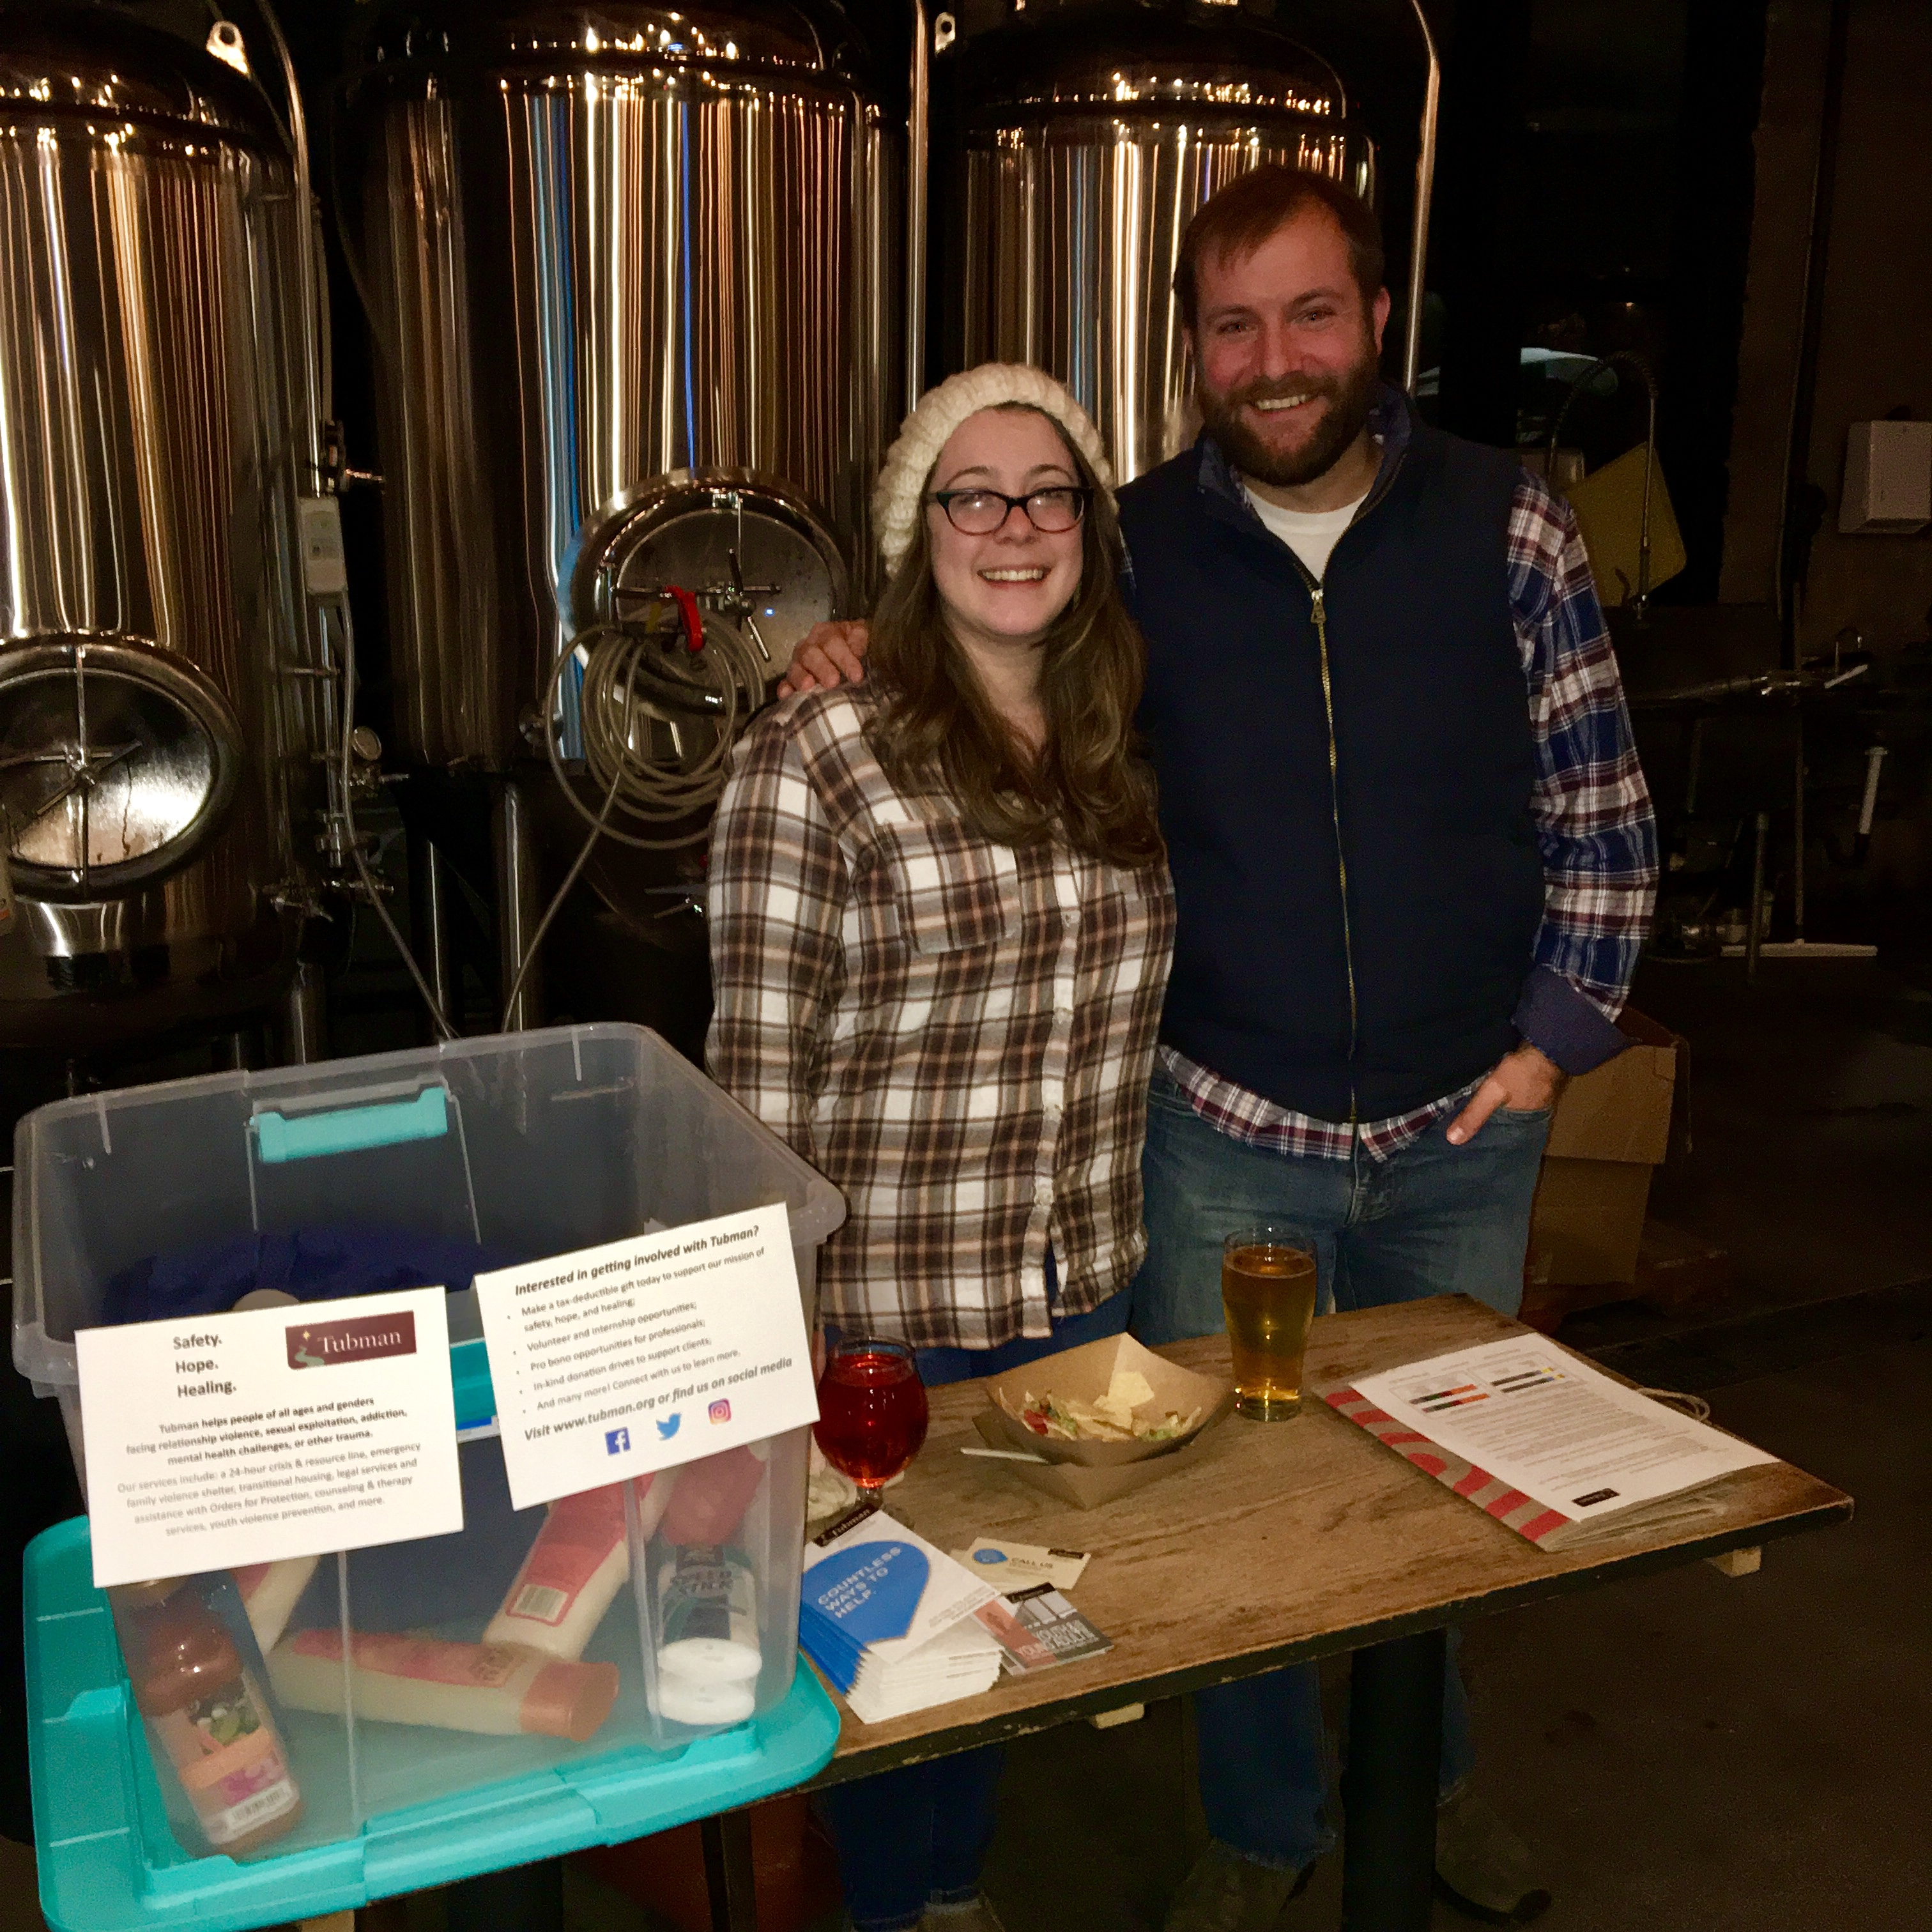 Sociable Cider Werks fundraiser and donations drive